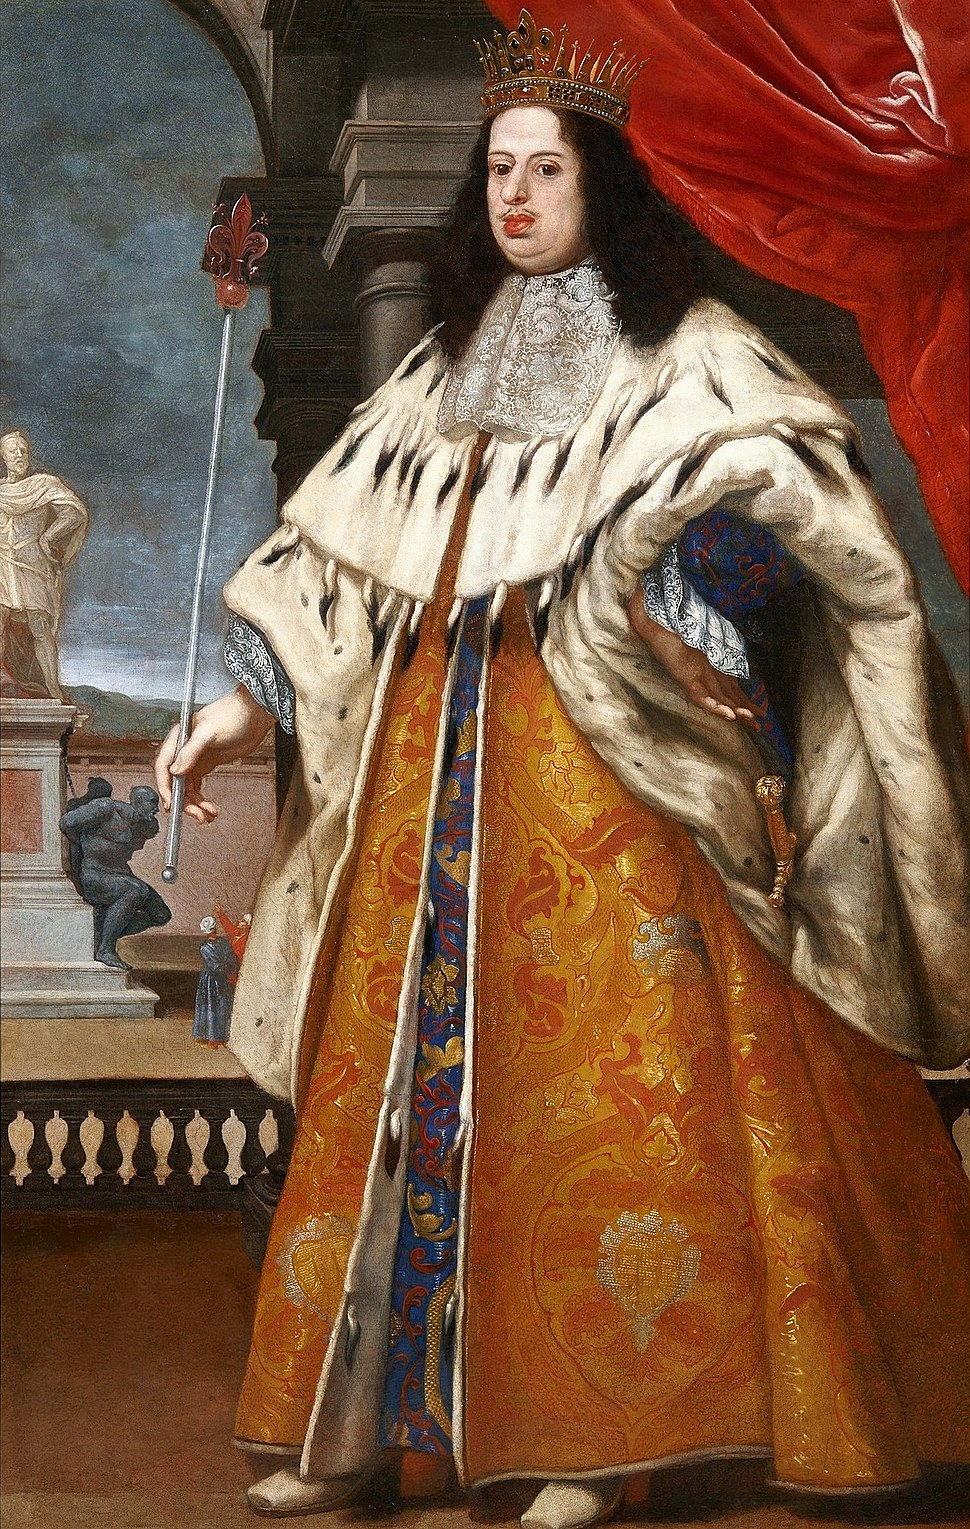 Volterrano, Cosimo III de%27 Medici in grand ducal robes (Warsaw Royal Castle)